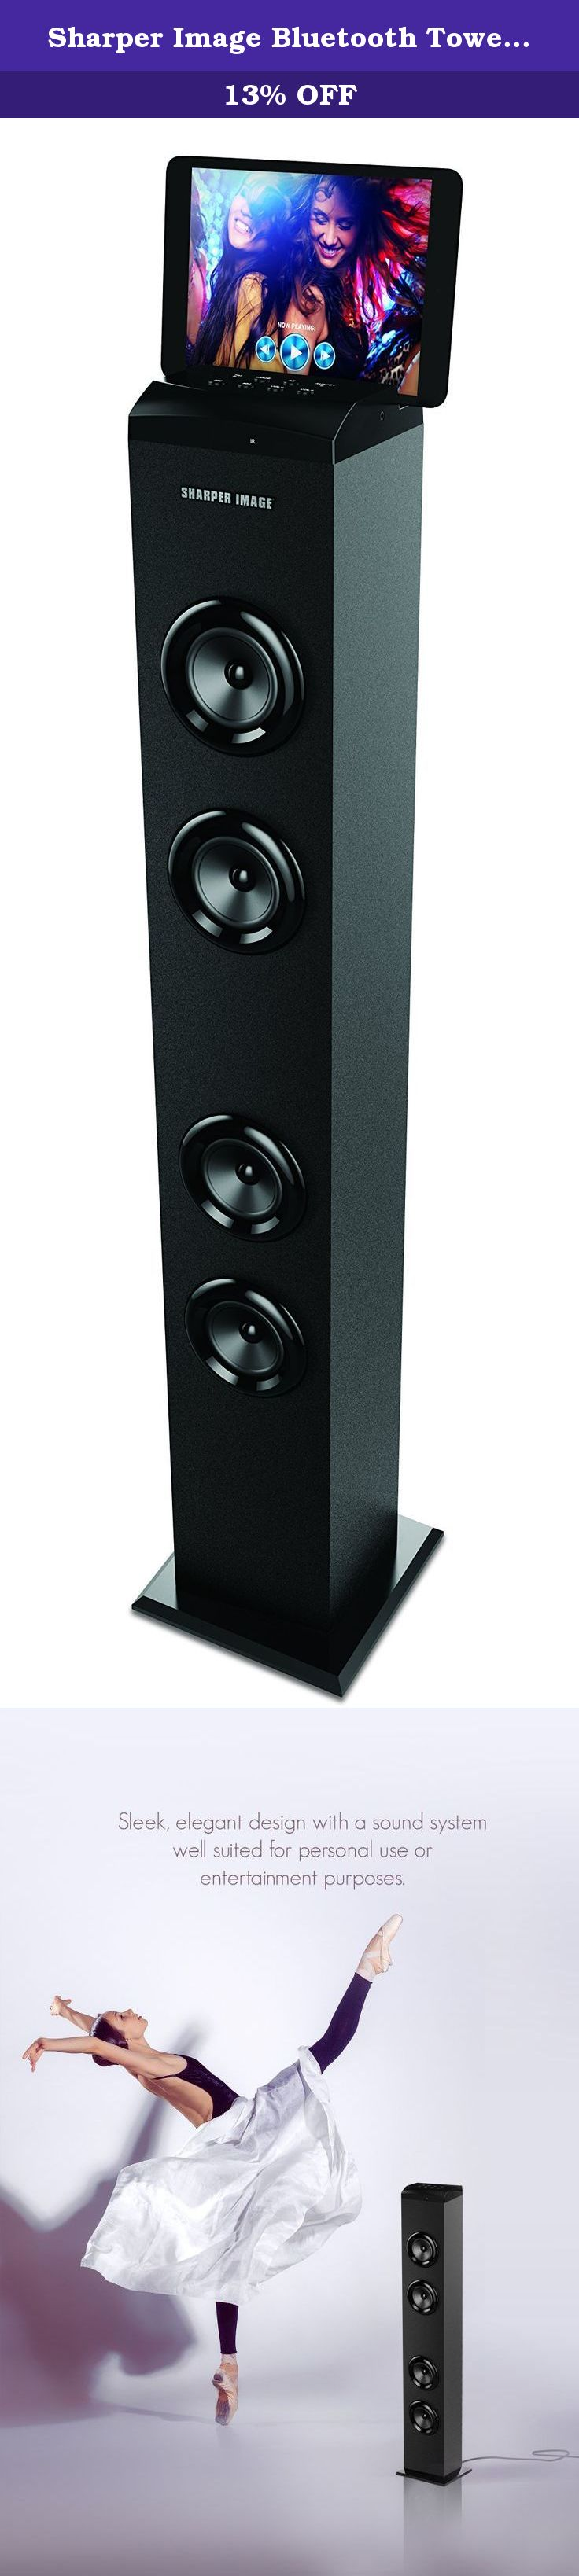 Sharper Image Bluetooth Tower Speaker With A Docking Sta Portable